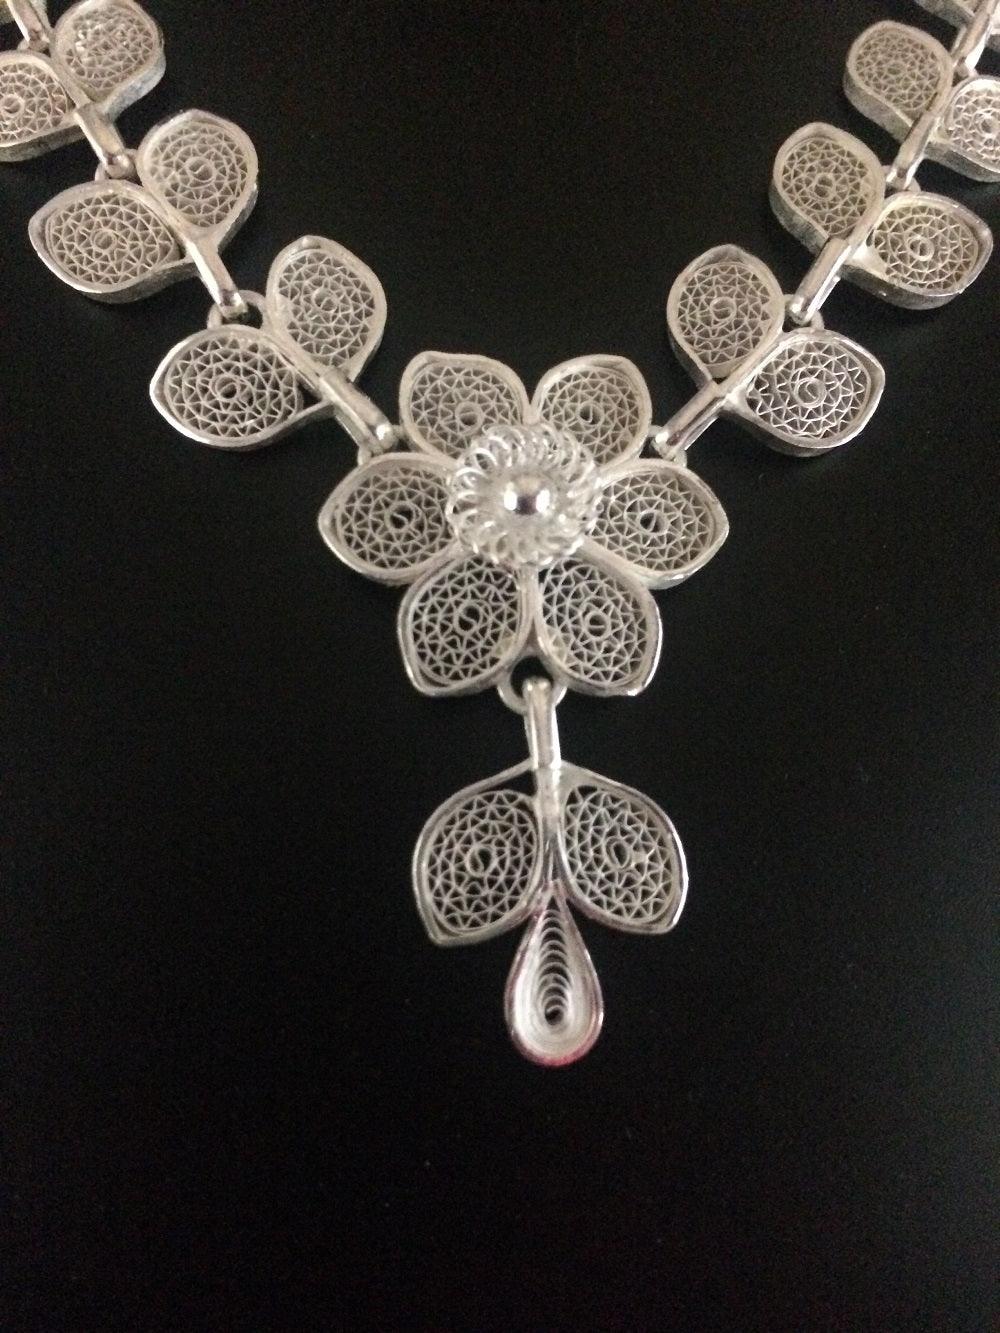 jewelleries place get with collection silver know white lustre in its the found aura segment to contemporary metallic blog modern and shinny bright has jewellery effect chique online about